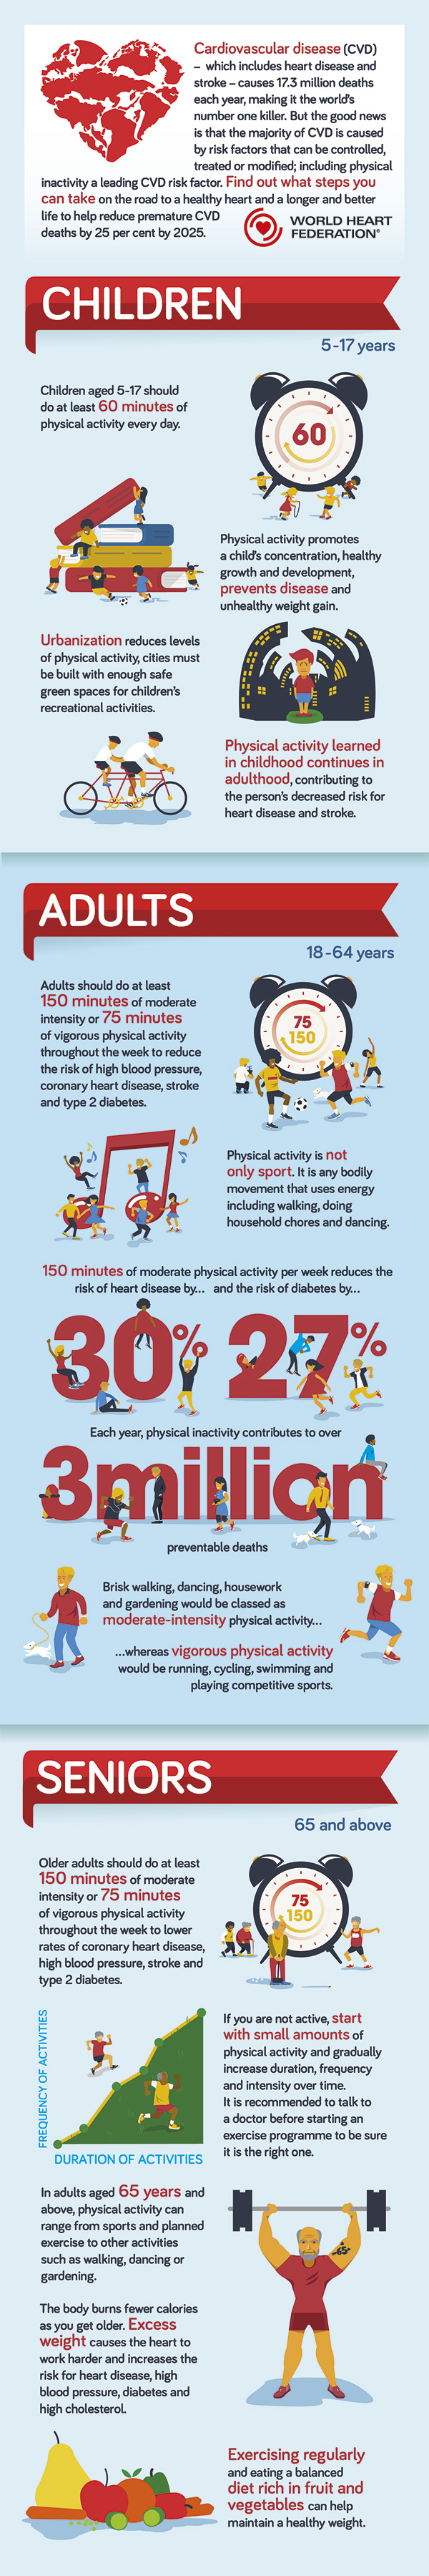 Physical activity & exercise prevent heart diseases